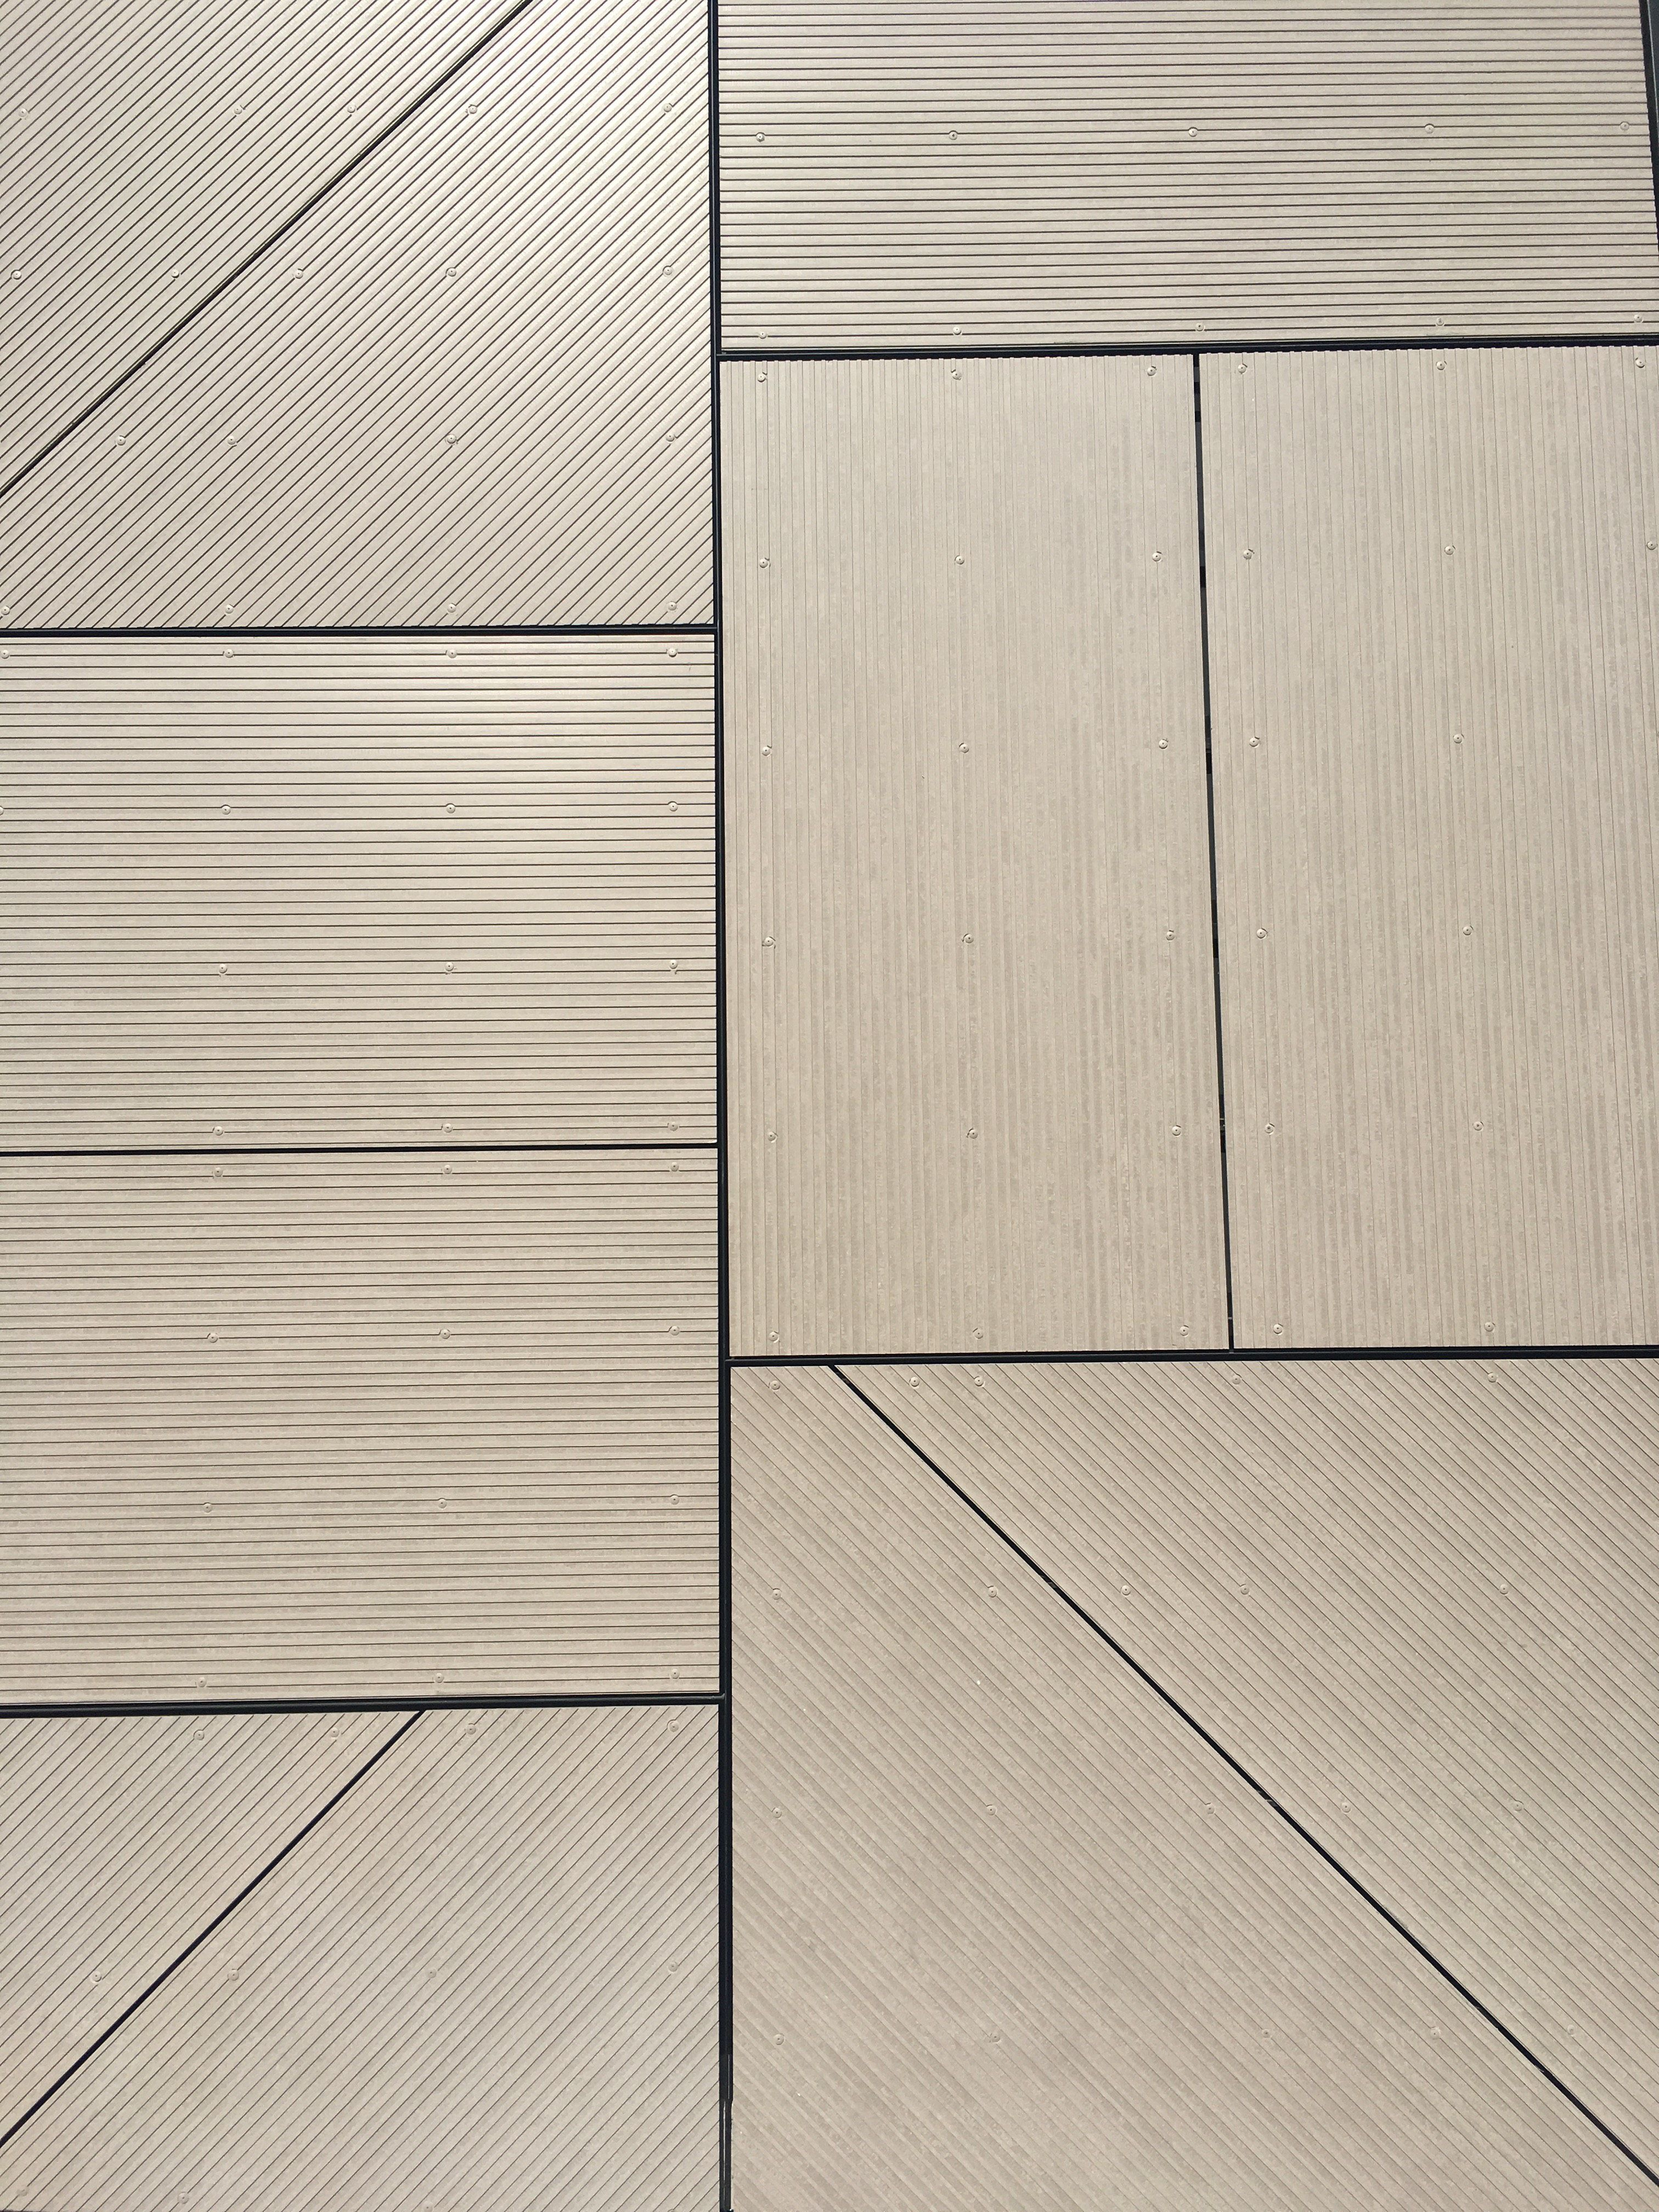 Equitone Linea Lt60 Facade Panel Pattern At Tender